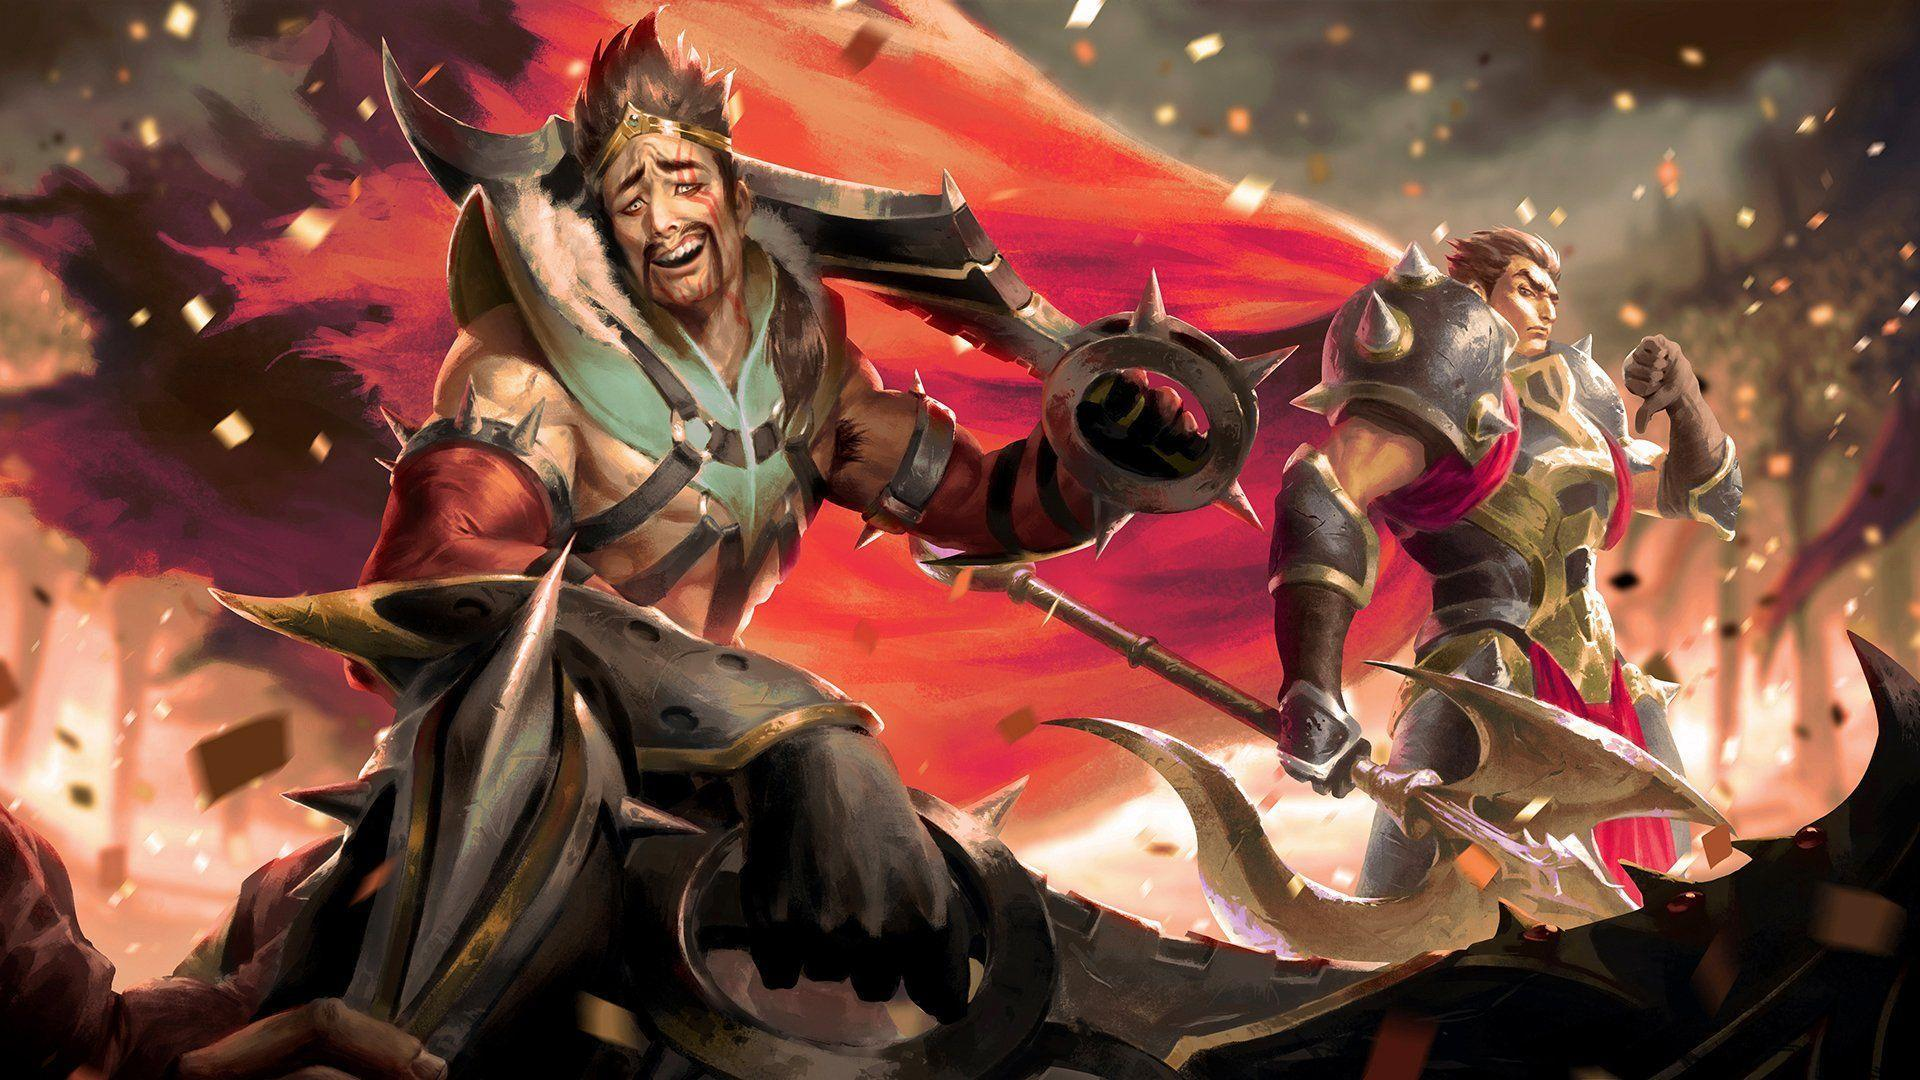 25 Draven (League Of Legends) HD Wallpapers | Backgrounds ...